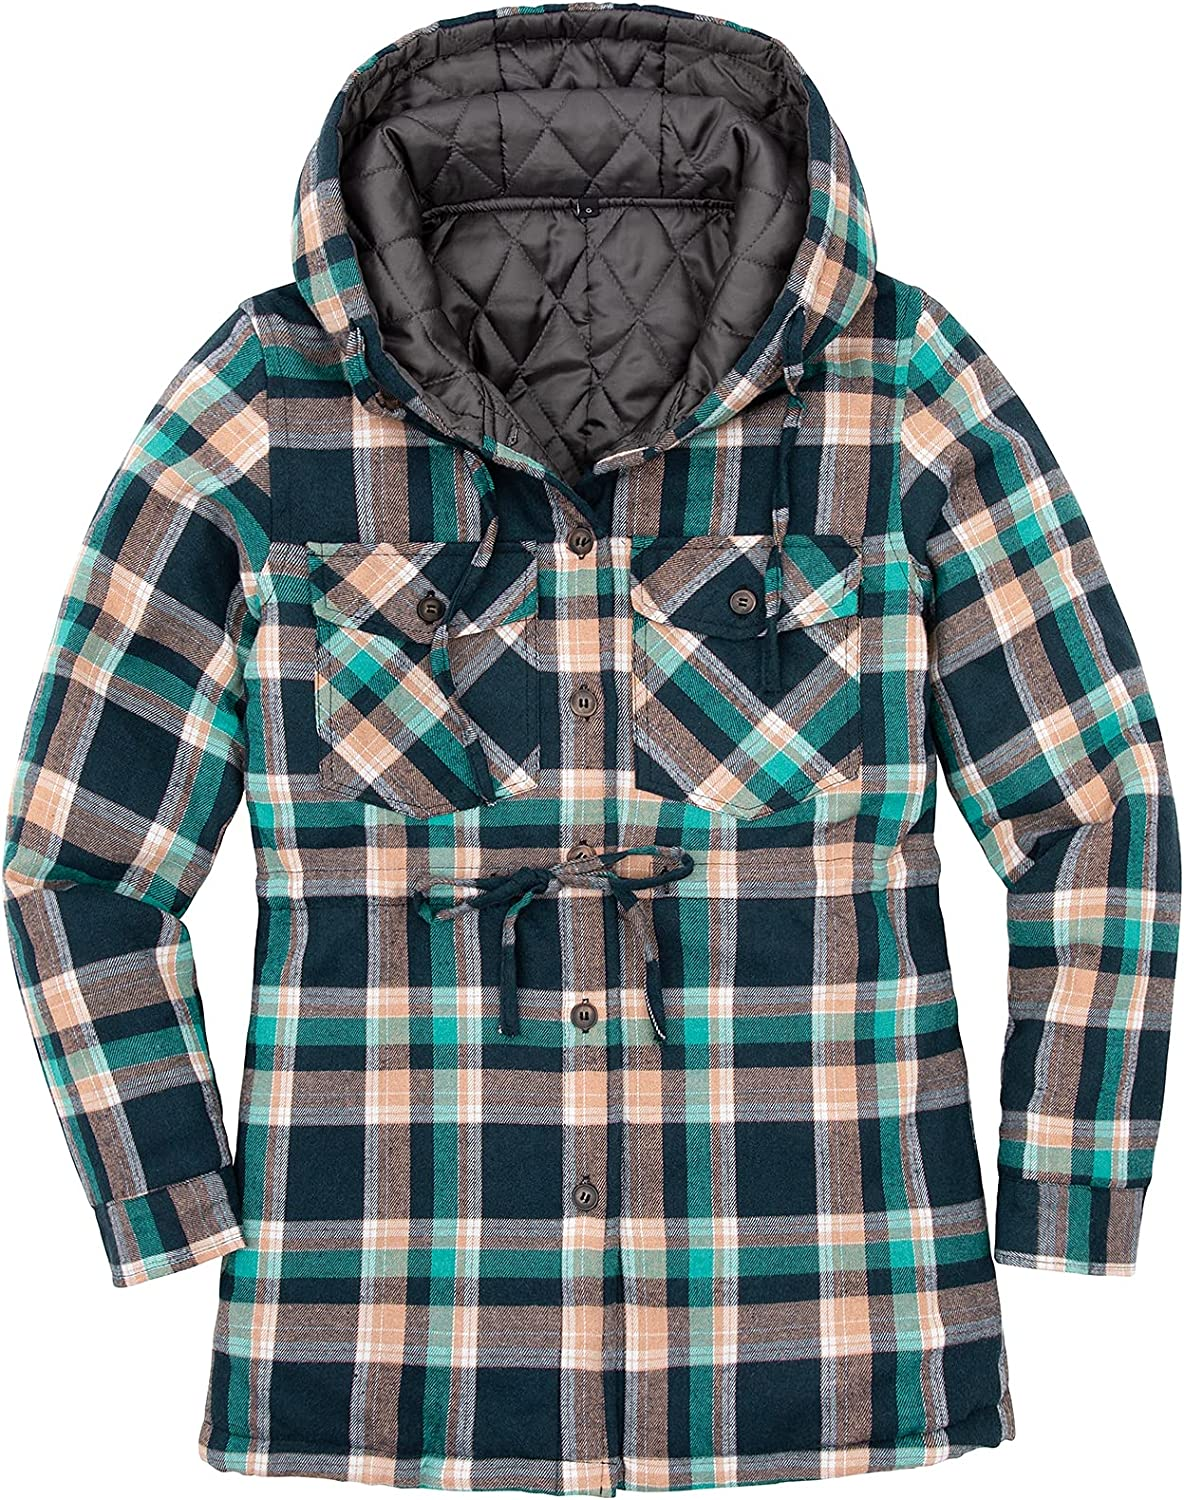 Women Flannel Shirt Jacket with Hood Long Sleeve Lined Quilted Flannel Jackets with Pockets